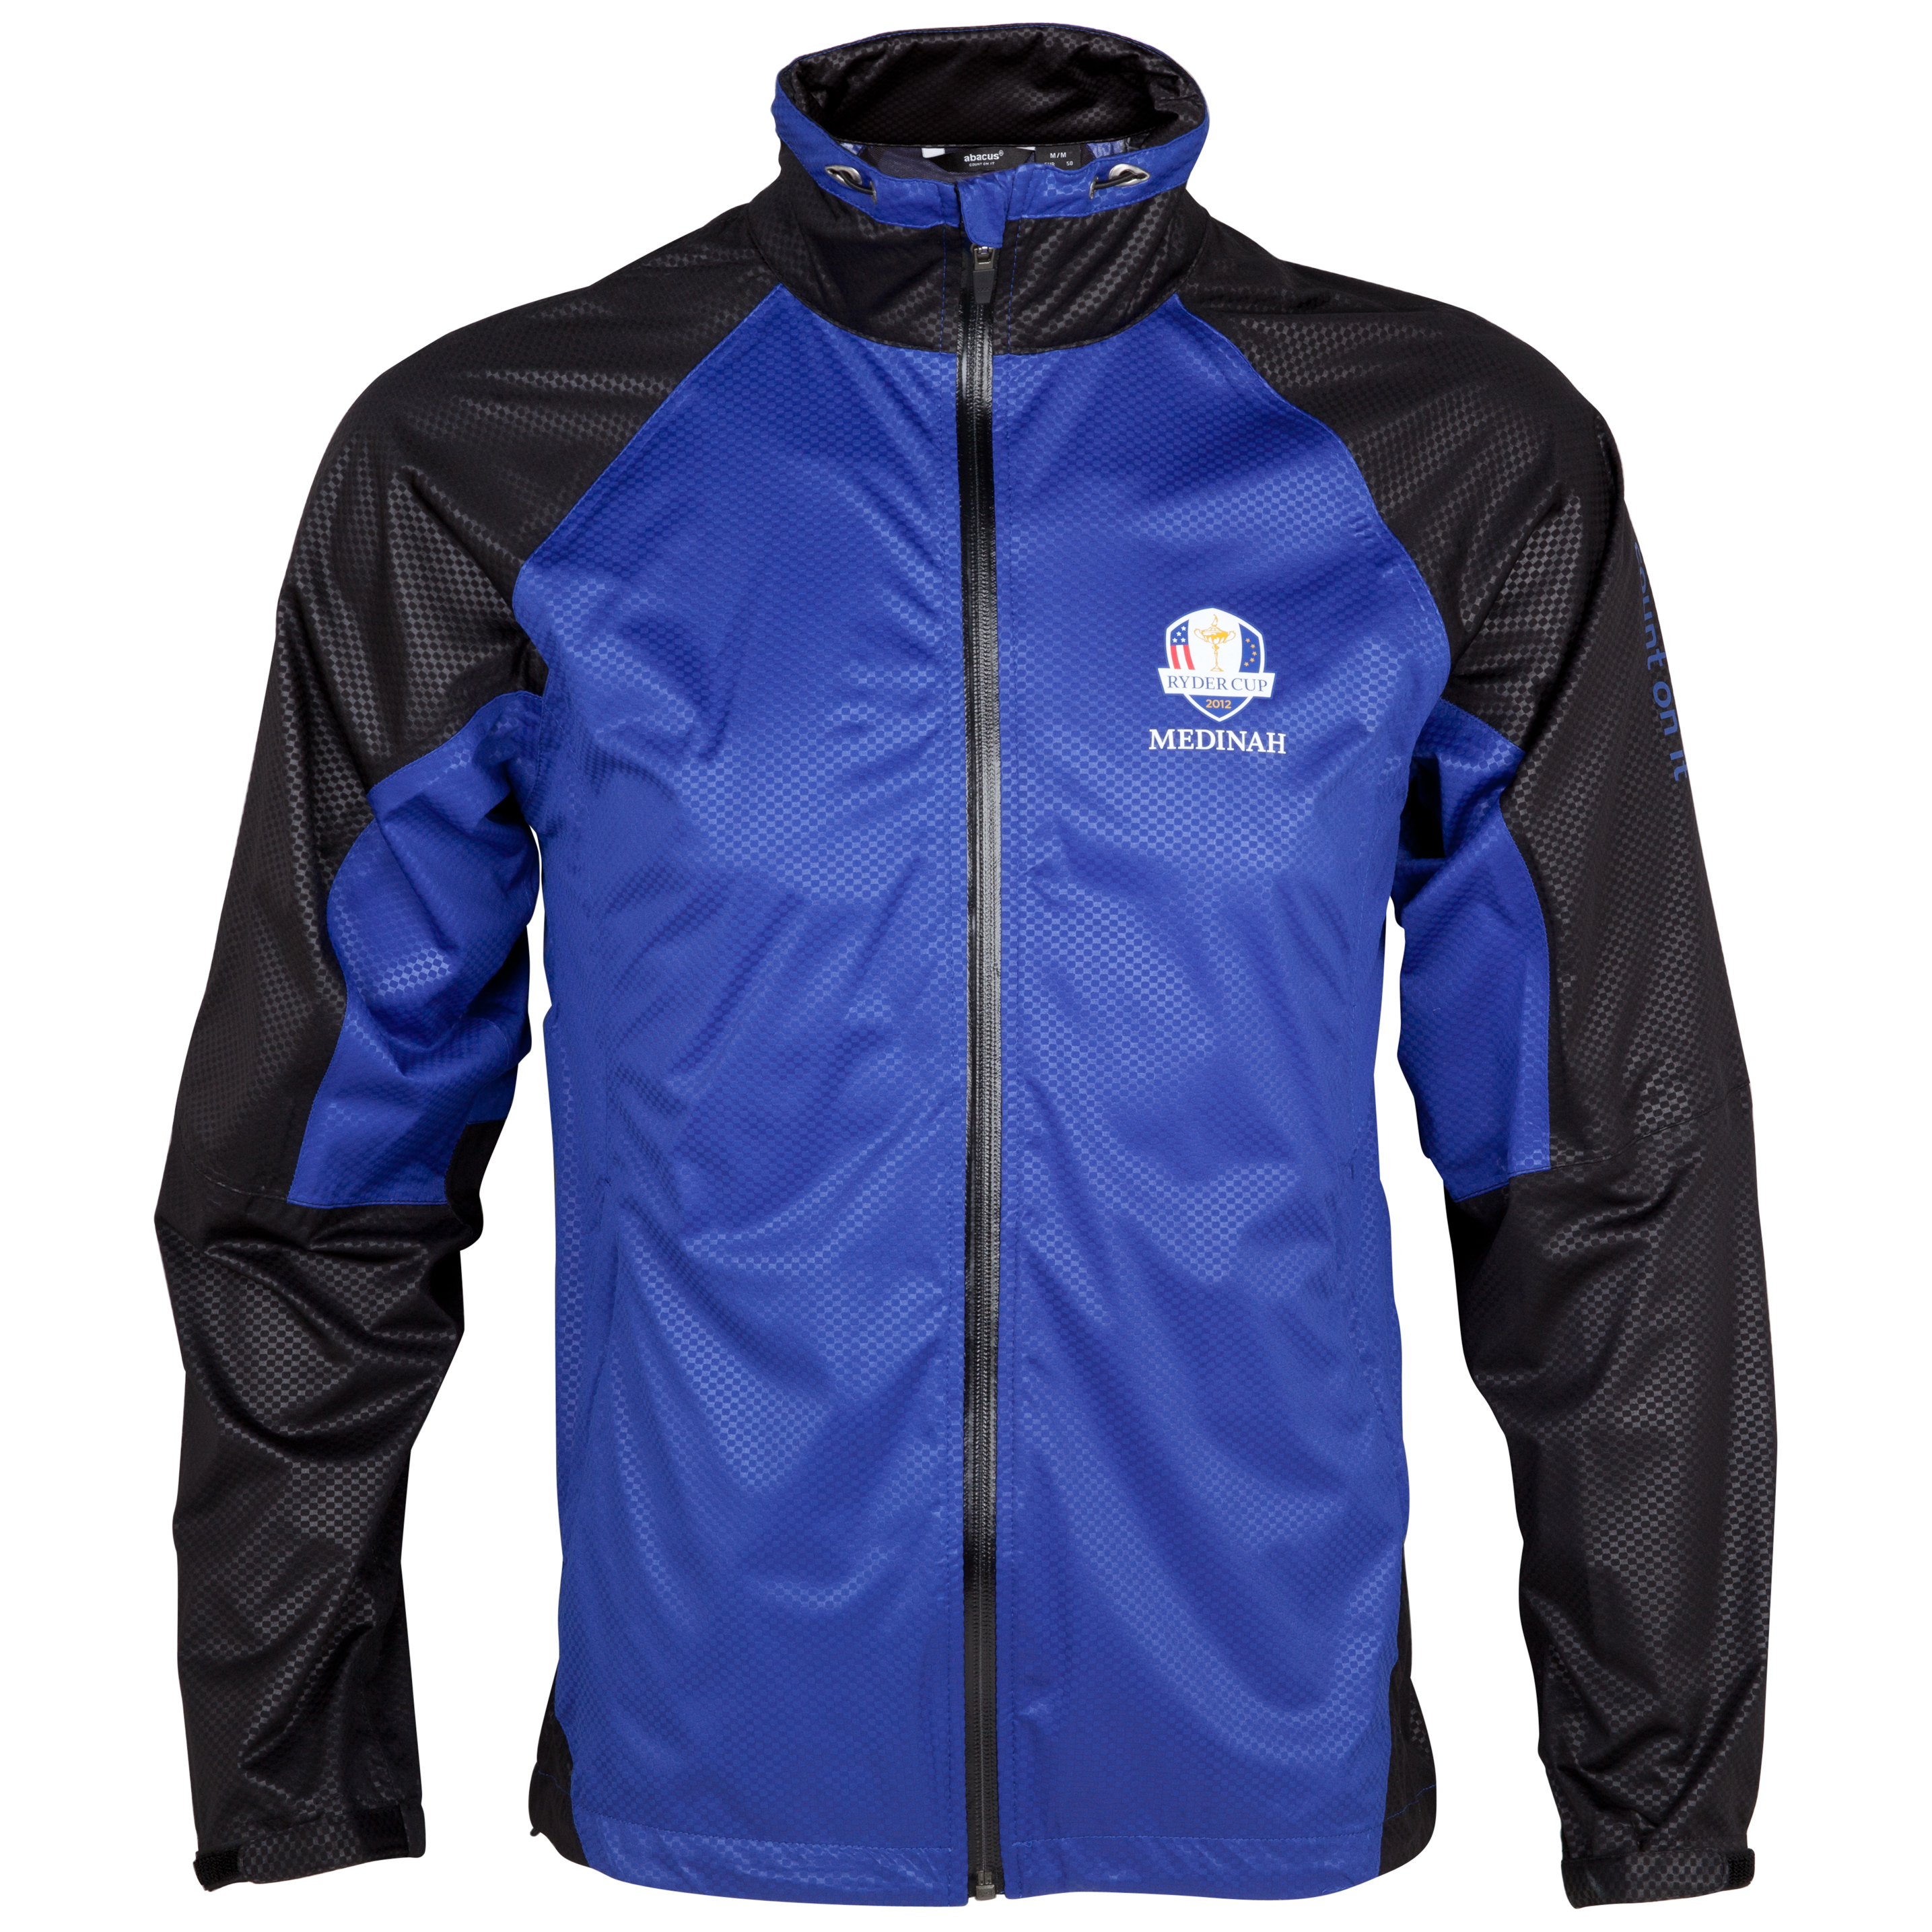 The 2012 Ryder Cup abacus Barton Stretchlite Rain Jacket - True Blue